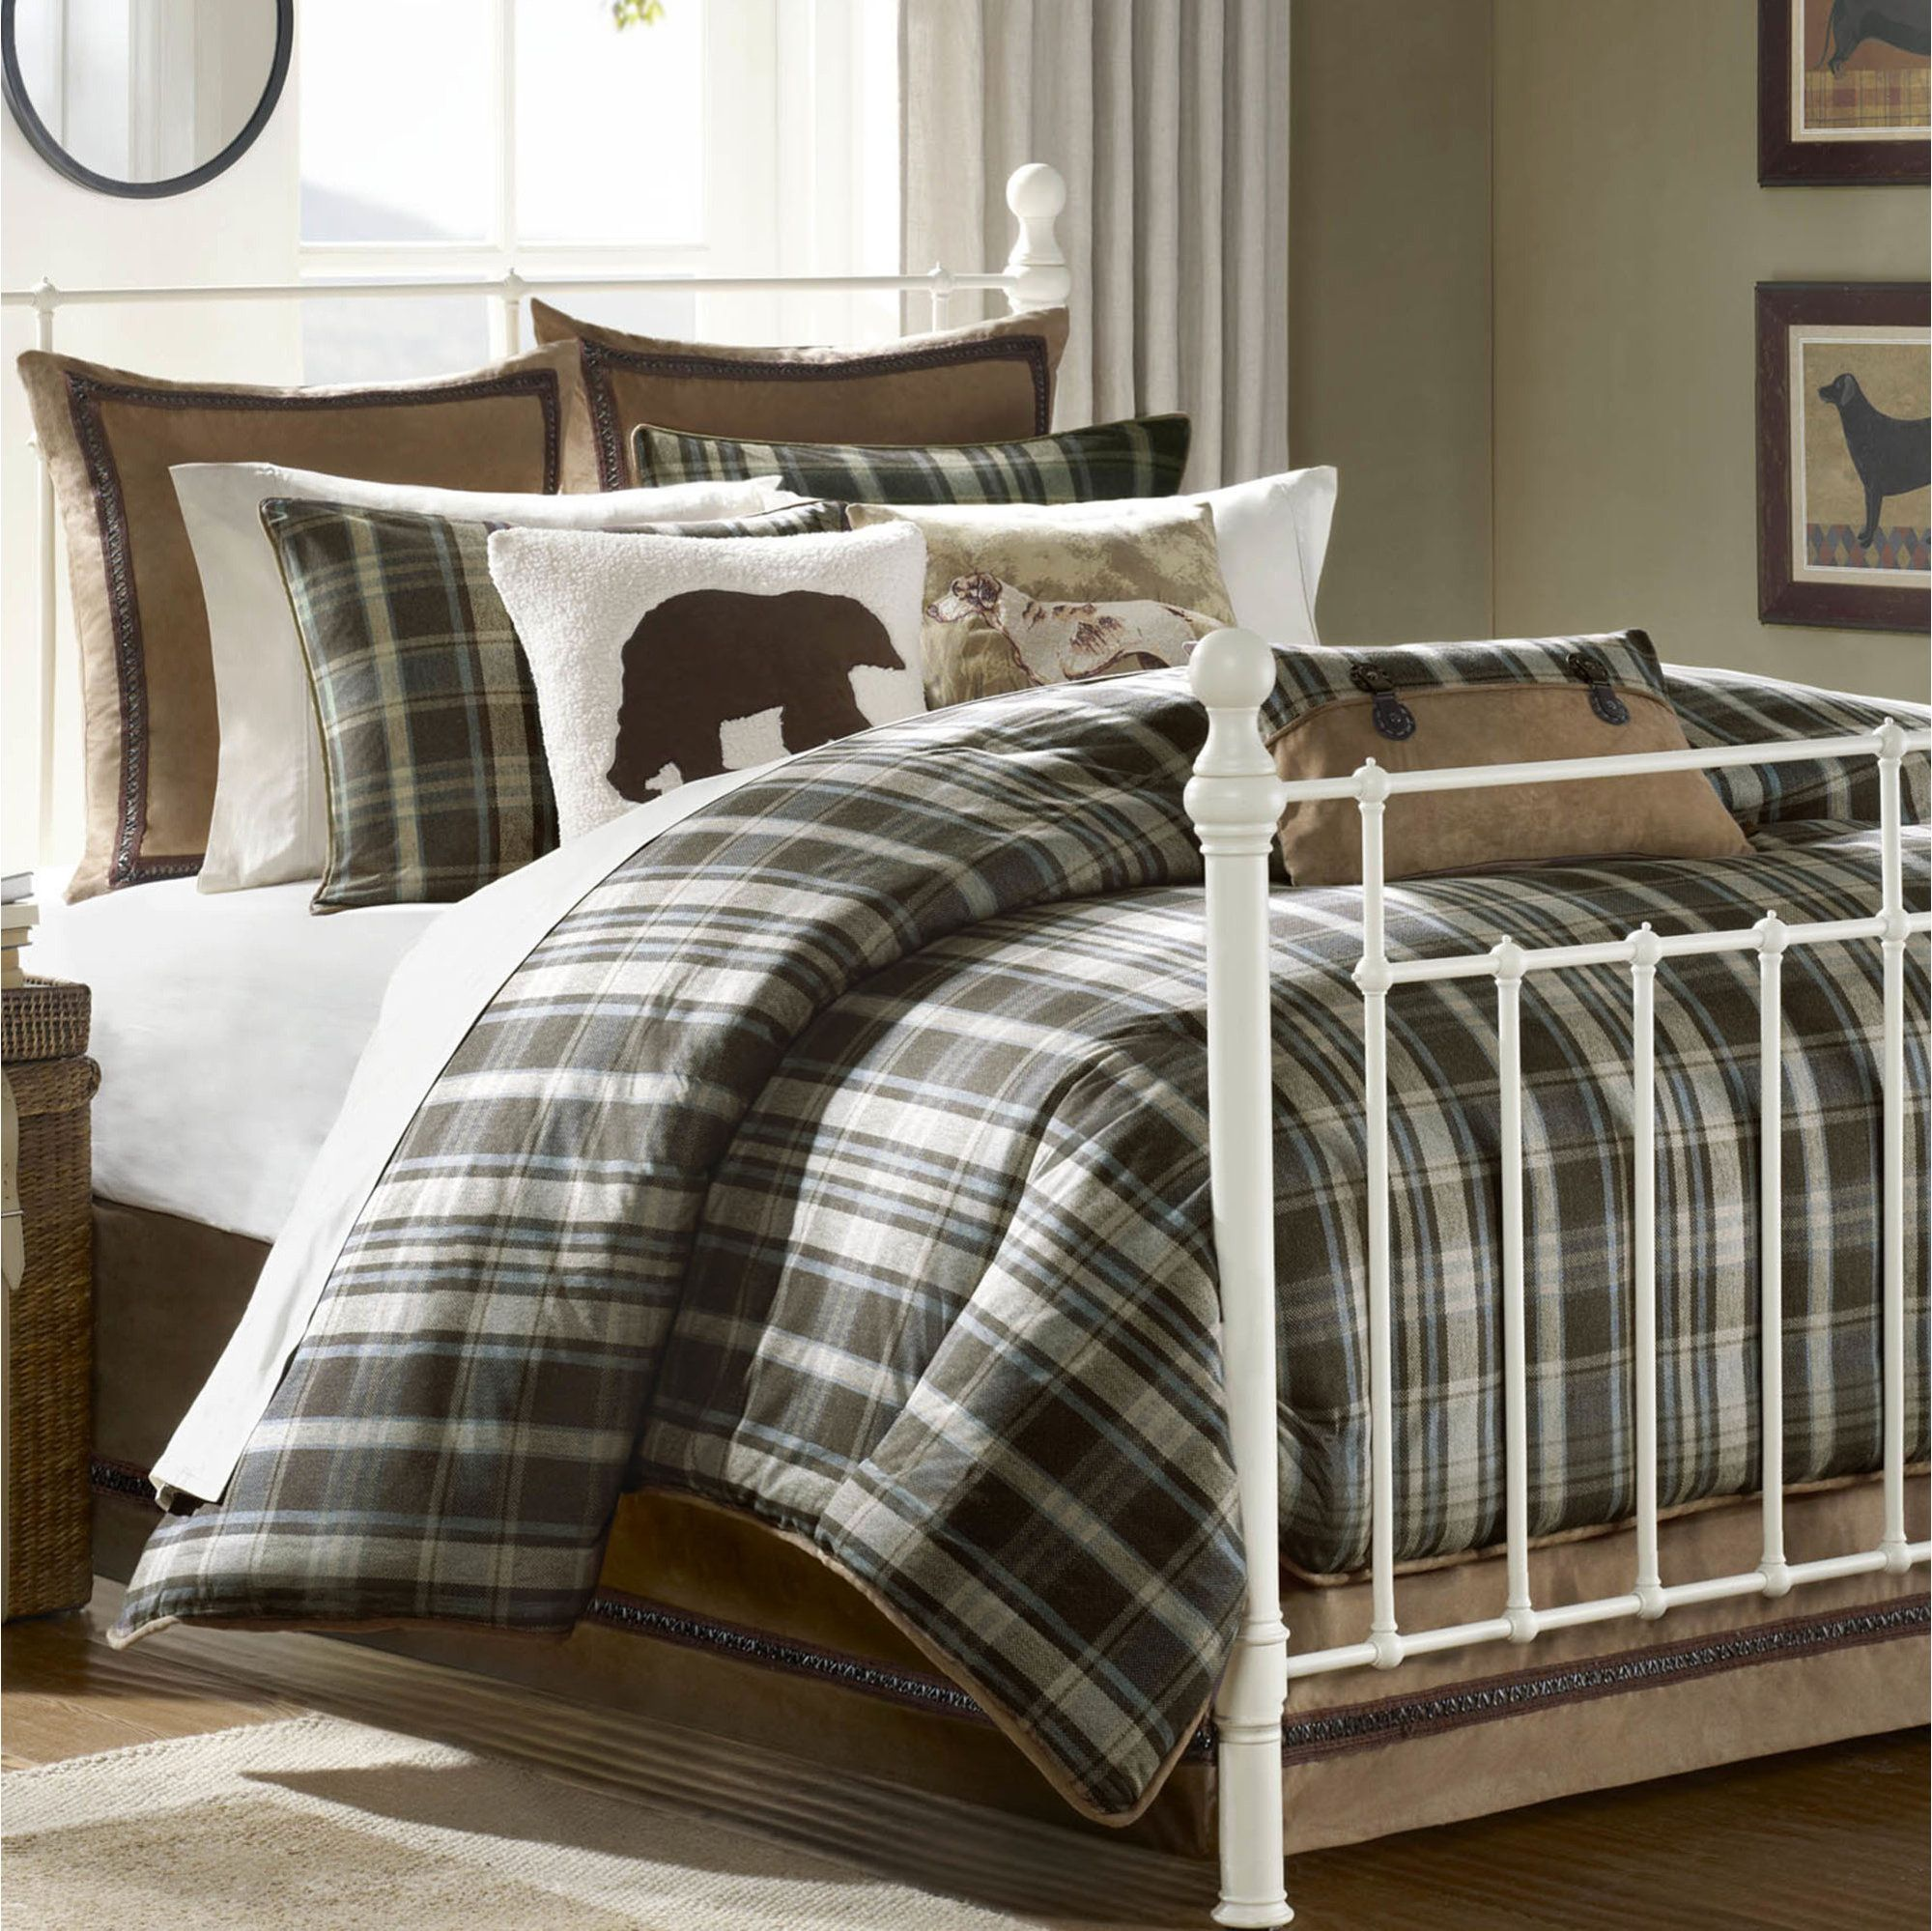 interior comforter reversible wonderful picture bedding green brown blue twin comforters agreeable sets plaid sheets orange navy surprising and lime